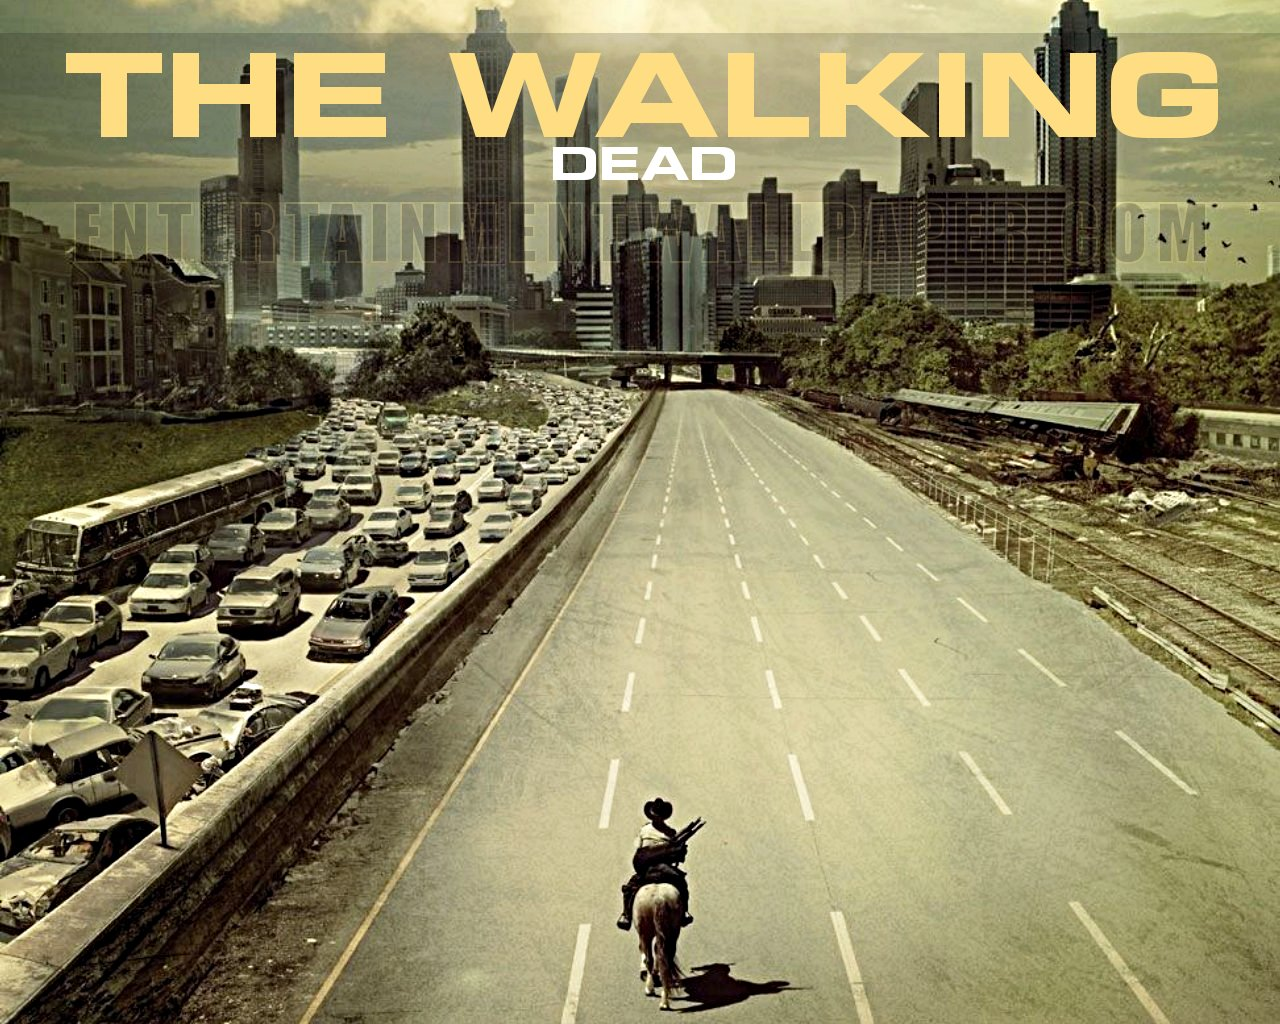 http://3.bp.blogspot.com/-S3ubiXoS8Hs/UP18yTH6tsI/AAAAAAAATMs/pzXW5d6ft-I/s1600/tv_the_walking_dead_wallpaper.jpg